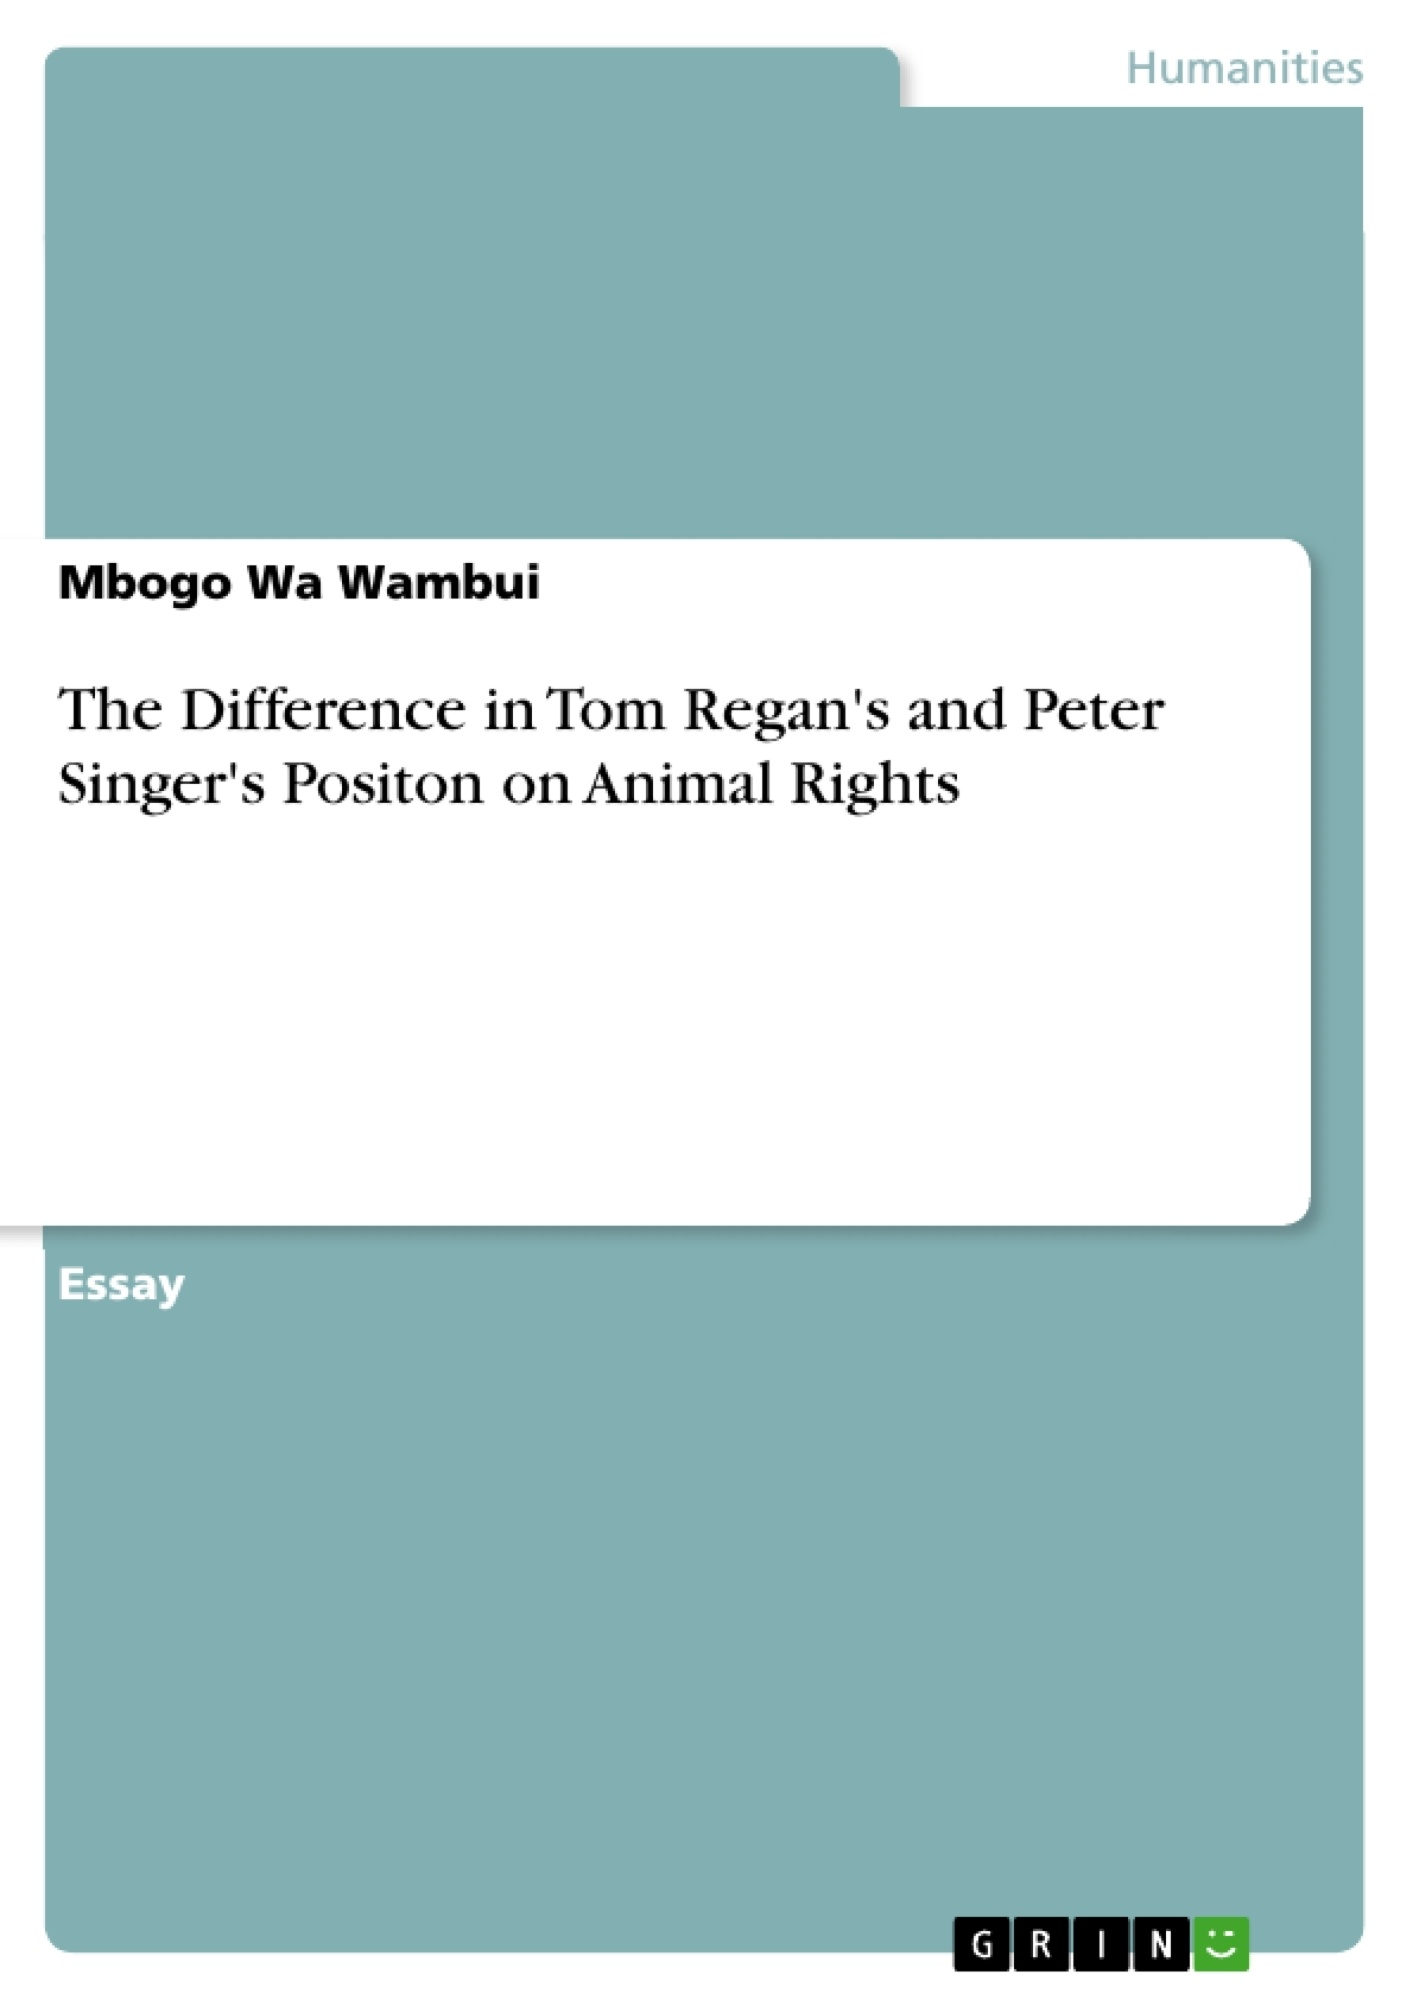 peter singer animal liberation essay leon living unfettered singer  the difference in tom regan s and peter singer s positon on animal upload your own